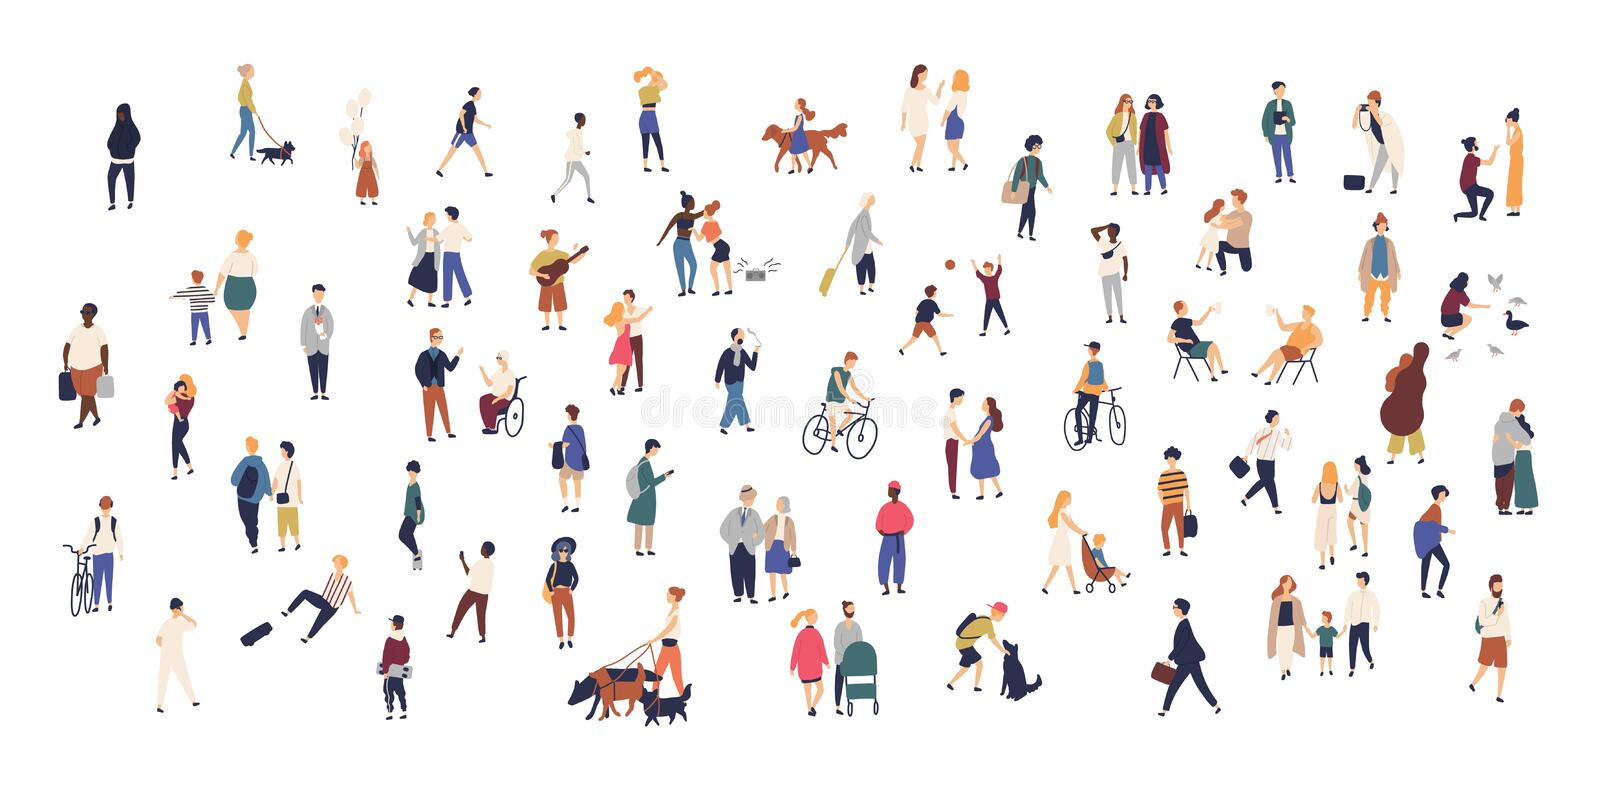 Crowd of tiny people walking with children or dogs, riding bicycles, standing, talking, running. Cartoon men and women. Performing outdoor activities on city vector illustration